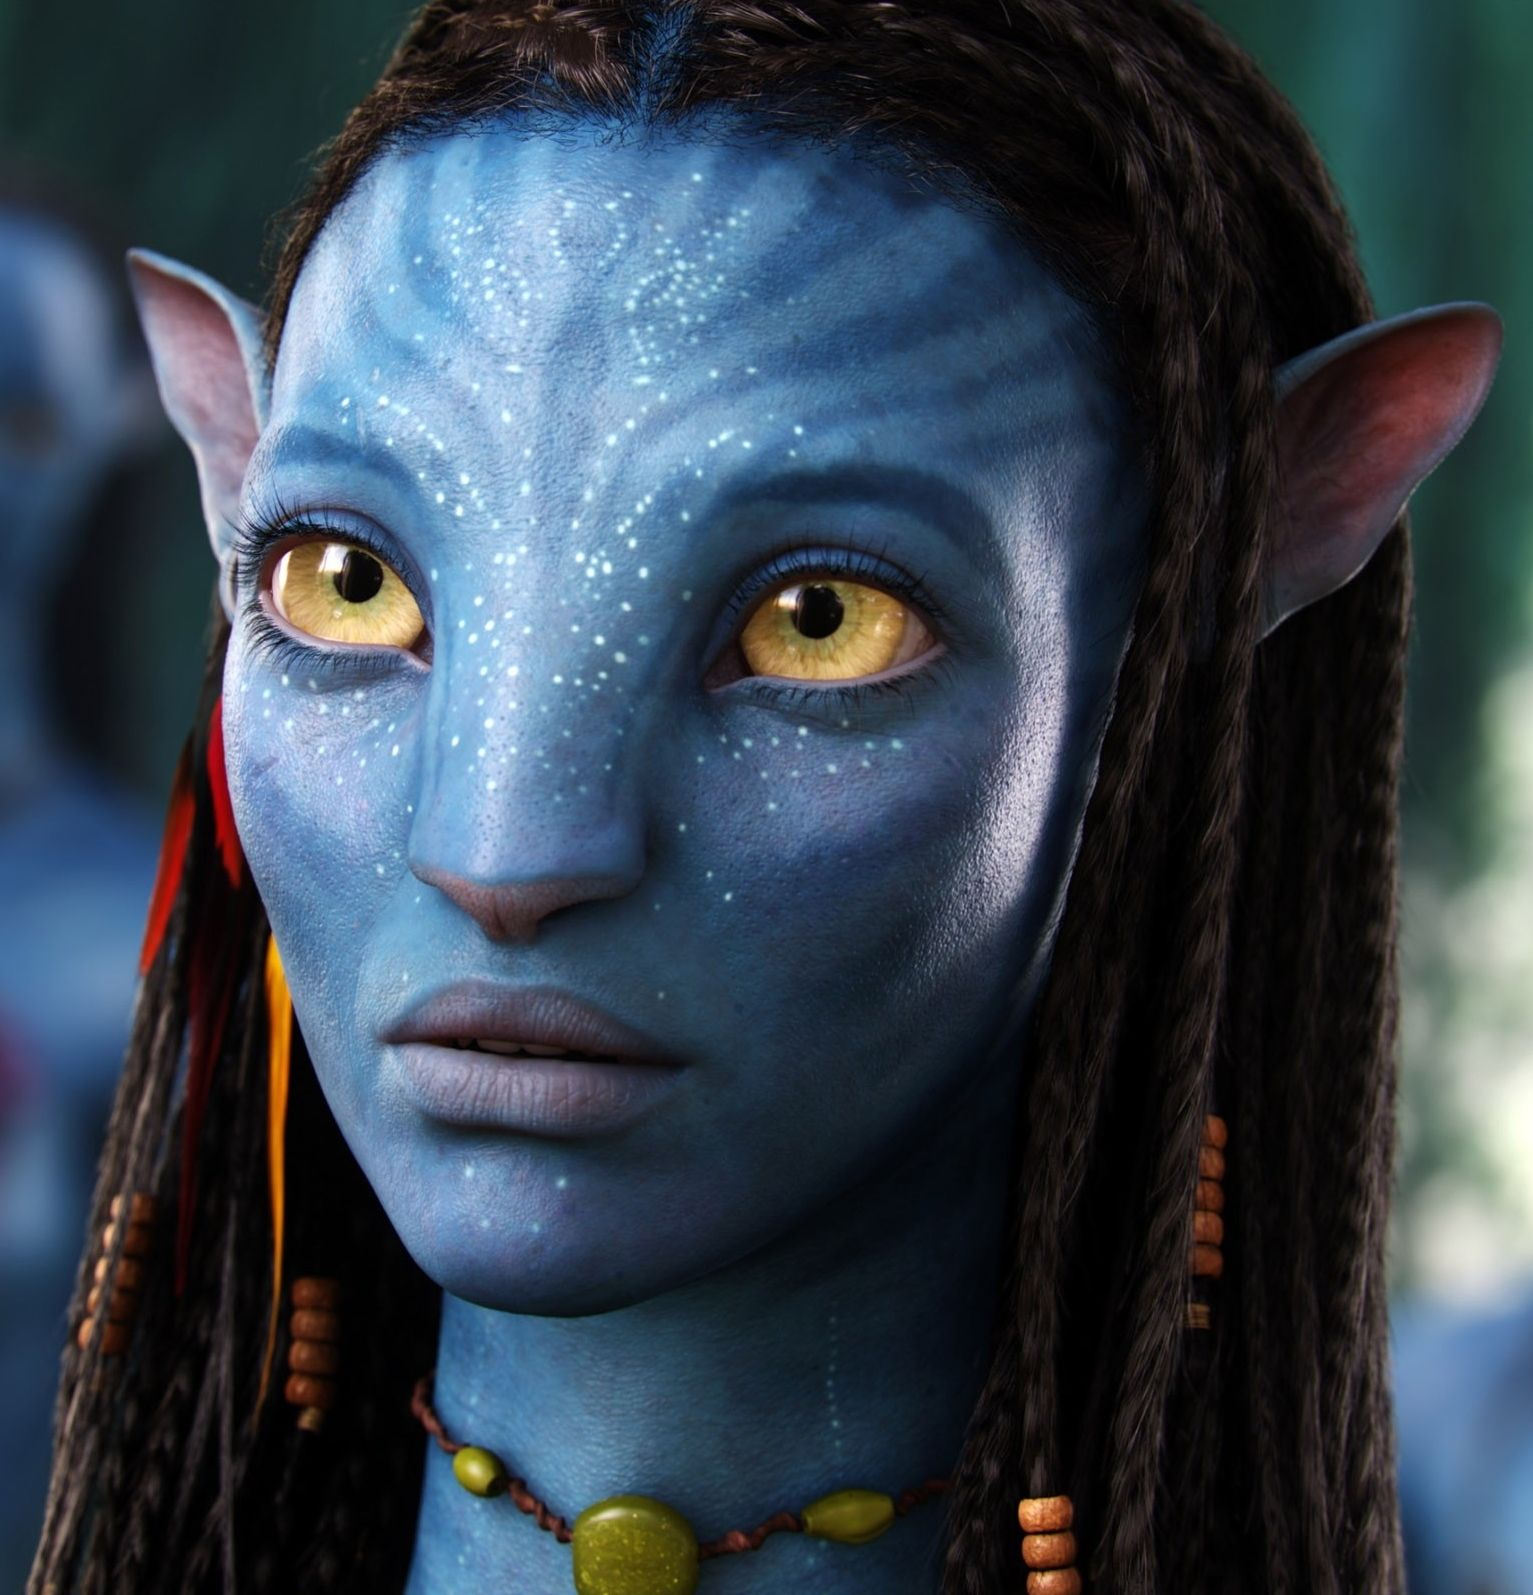 Avatar 2 Hd Full Movie: Neytiri(Avatar) Played By Zoe Saldana